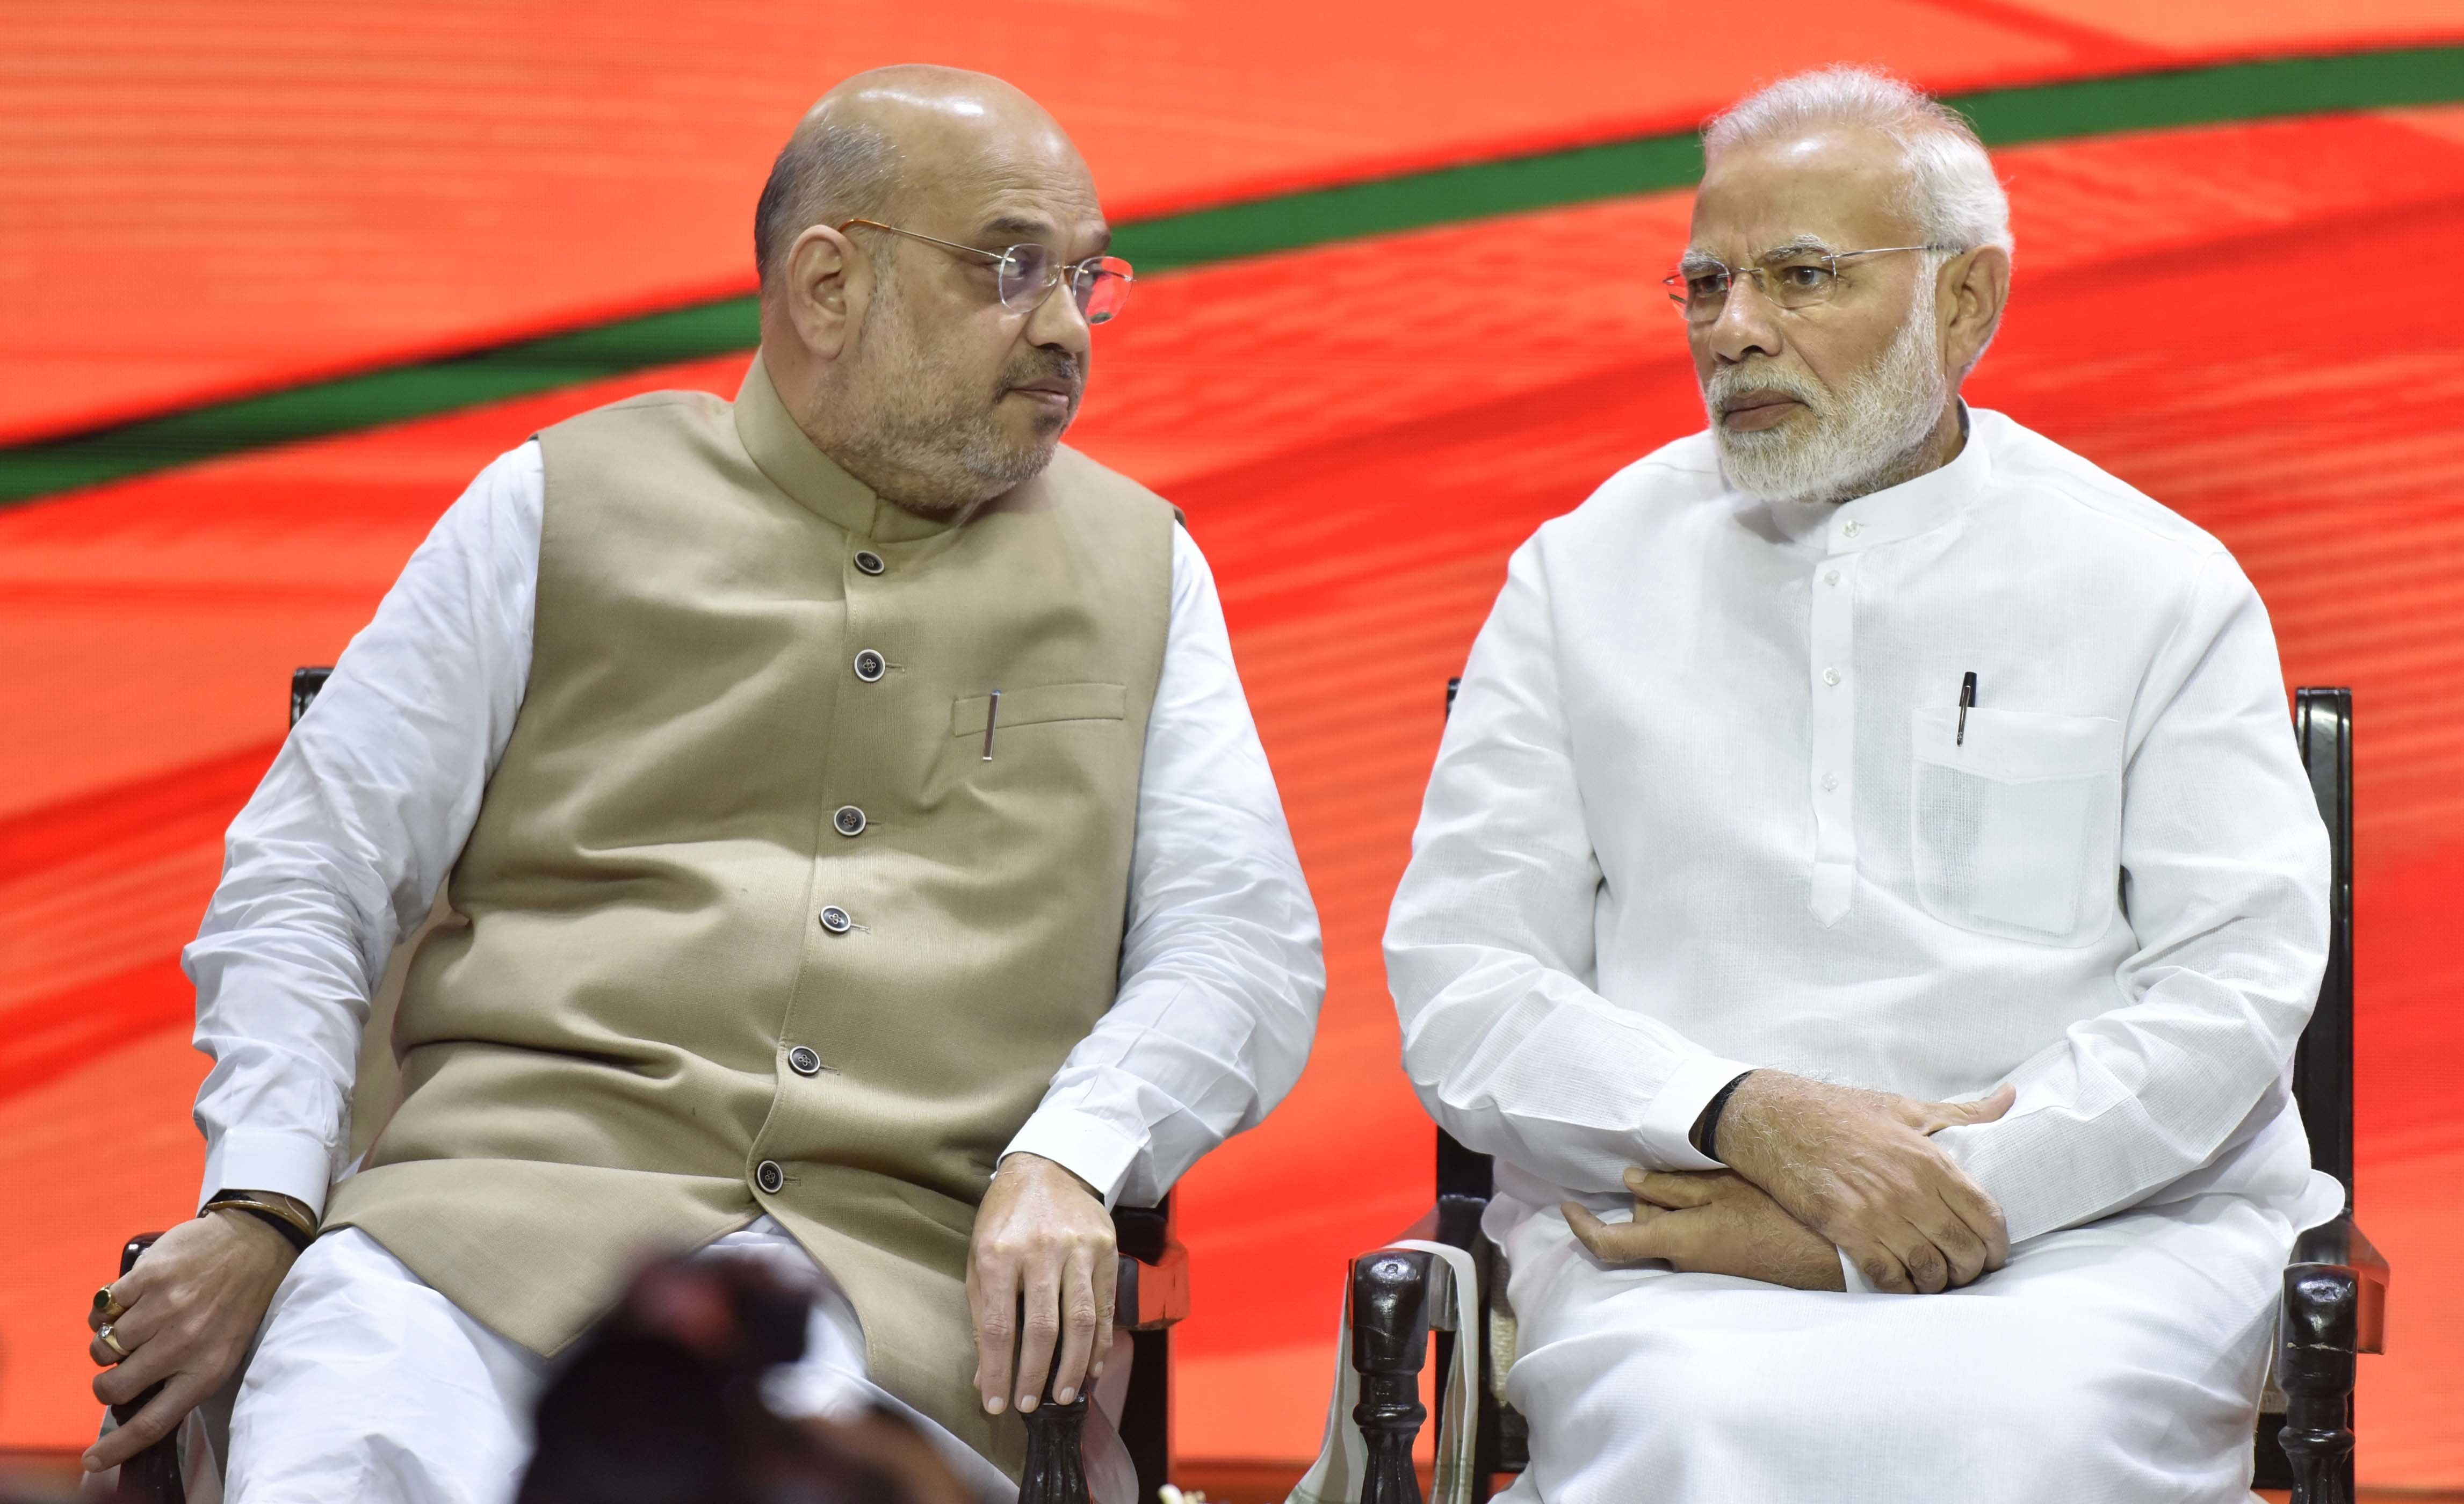 A file image of BJP chief Amit Shah and Prime Minister Narendra